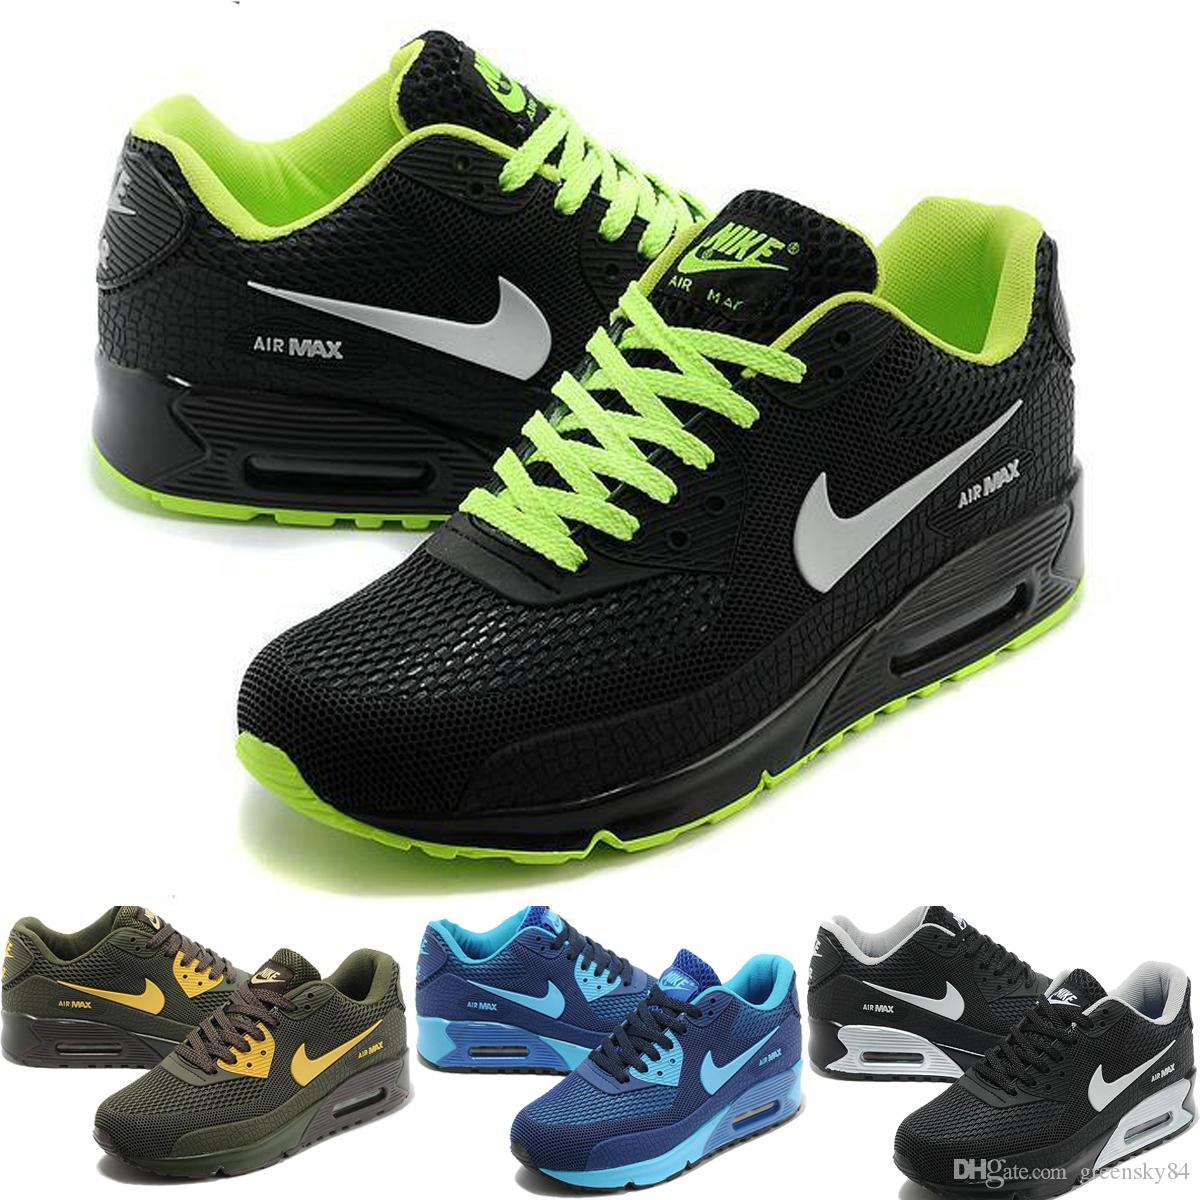 Nike Air Max 90 Kpu Runing Shoes For Men,Wholesale Cheap ...